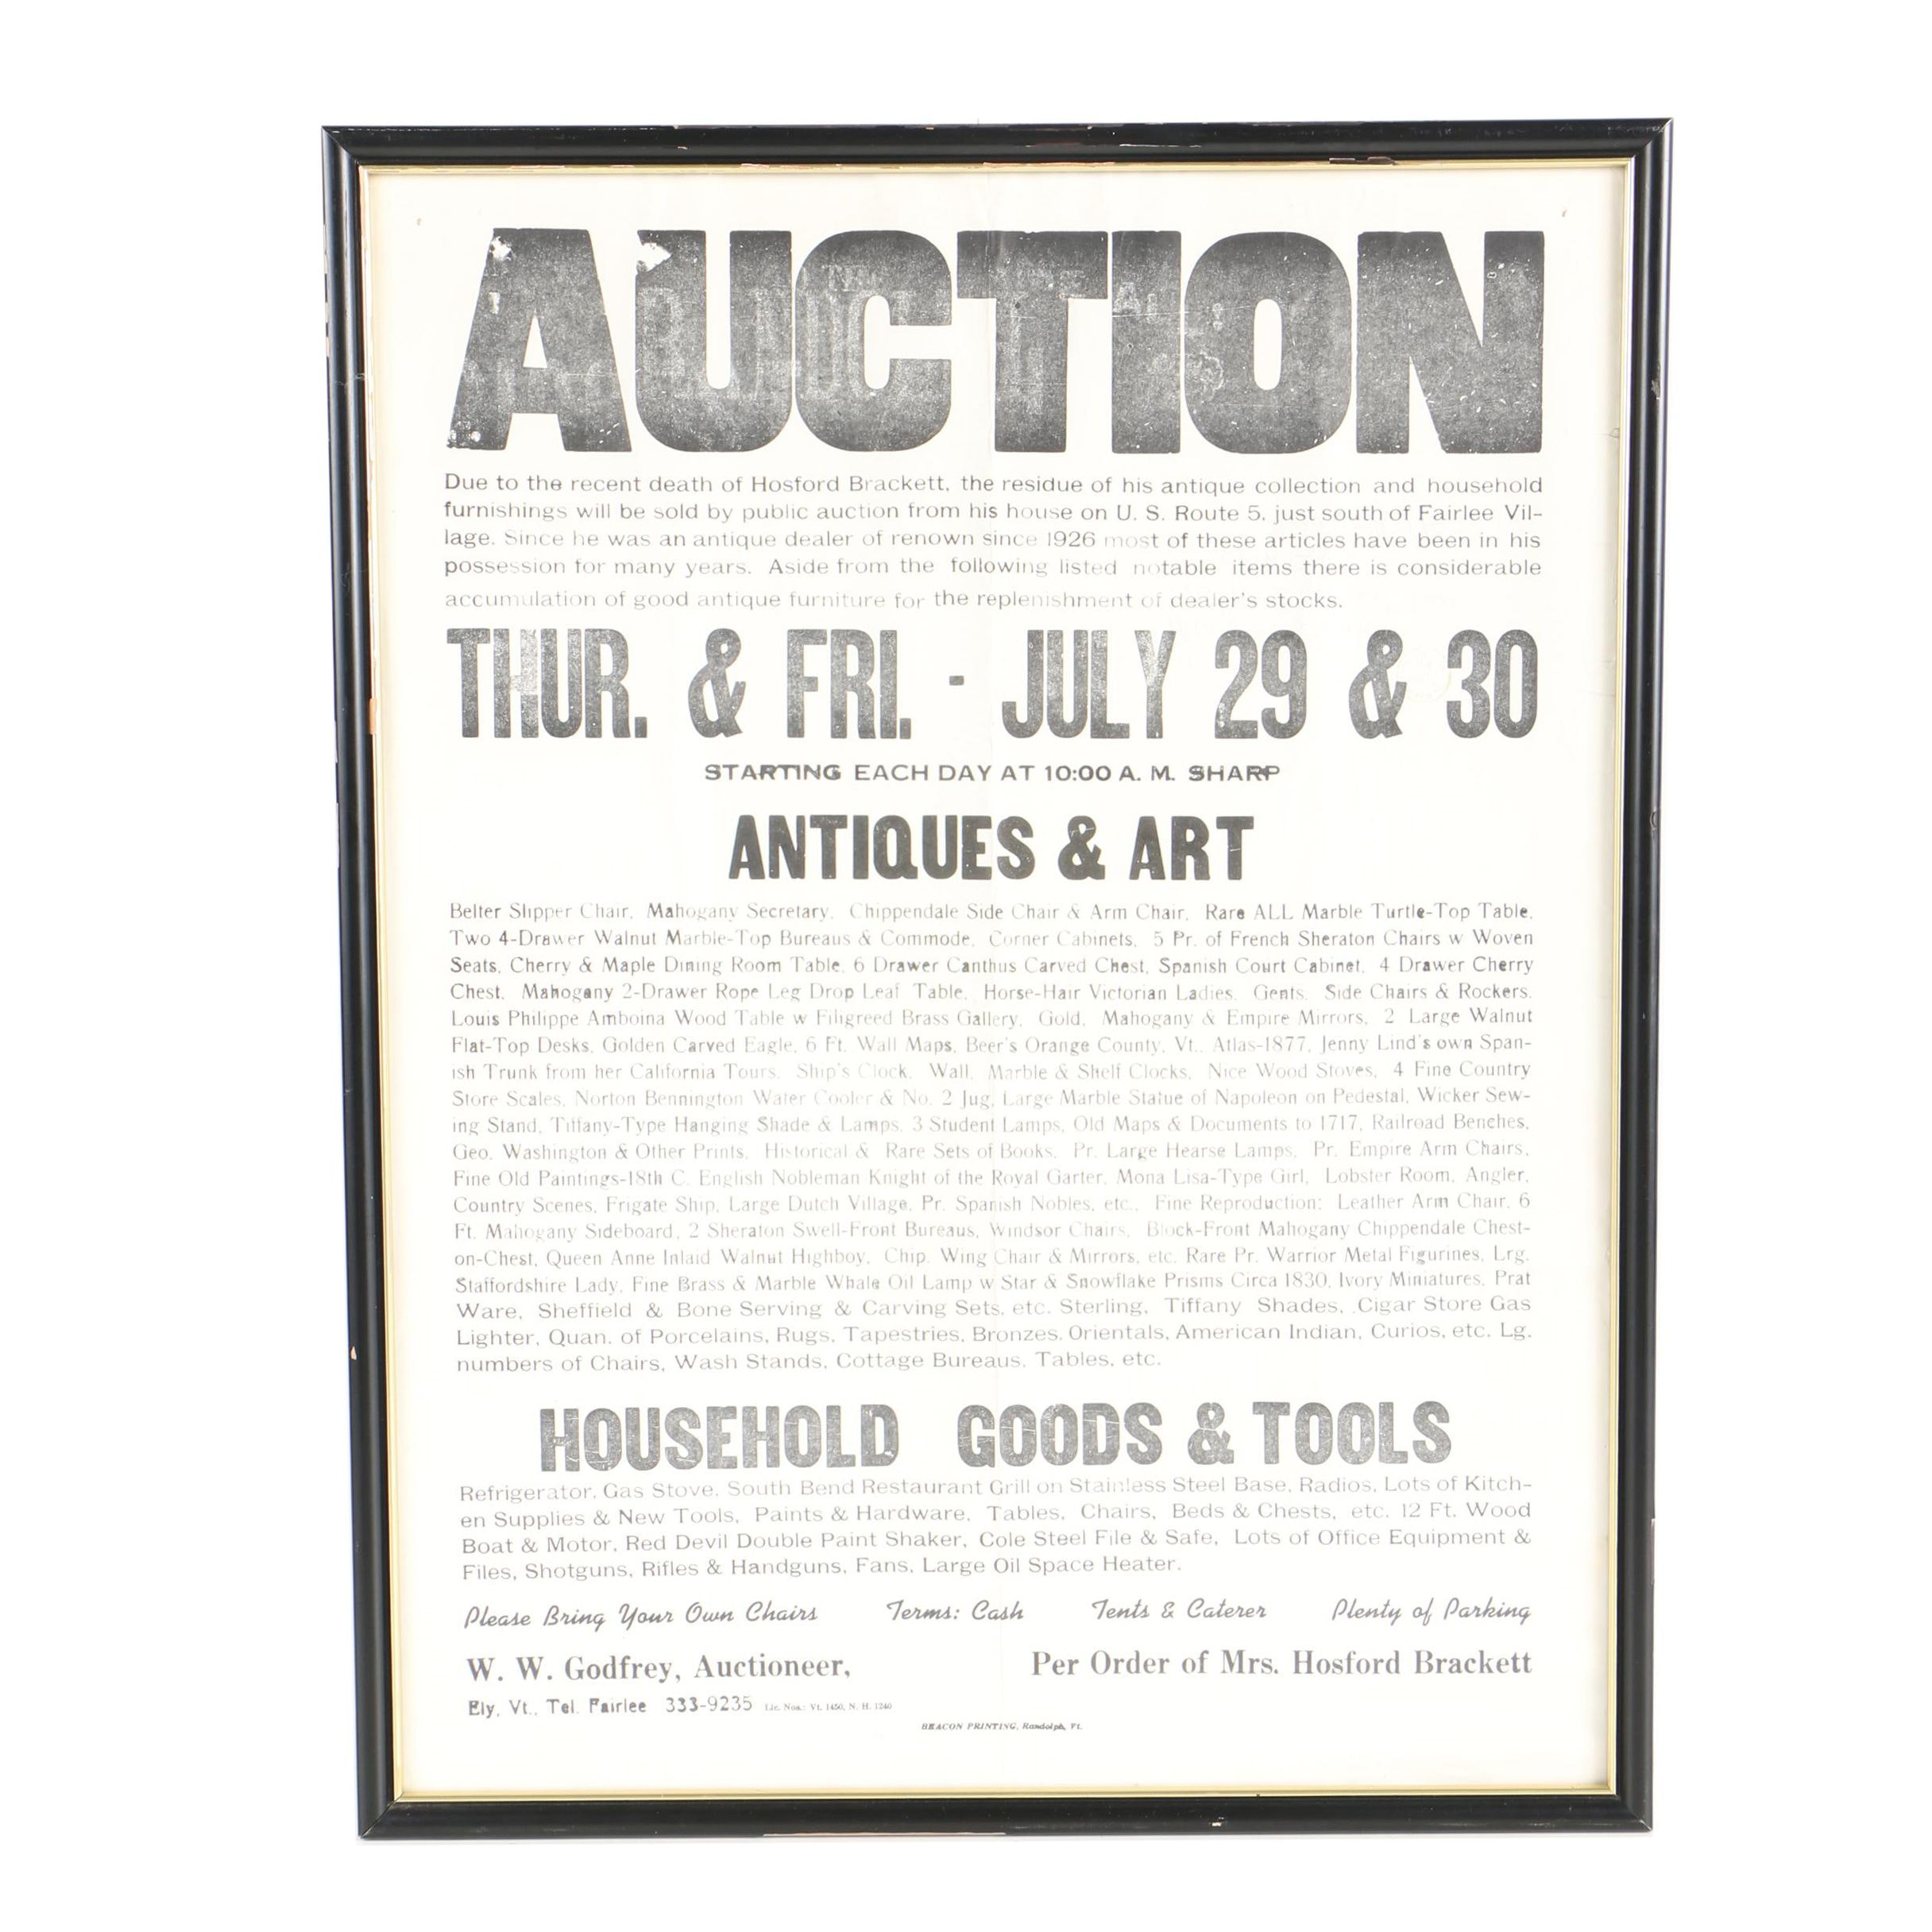 Hosford Brackett Estate Auction Poster, C. 1976